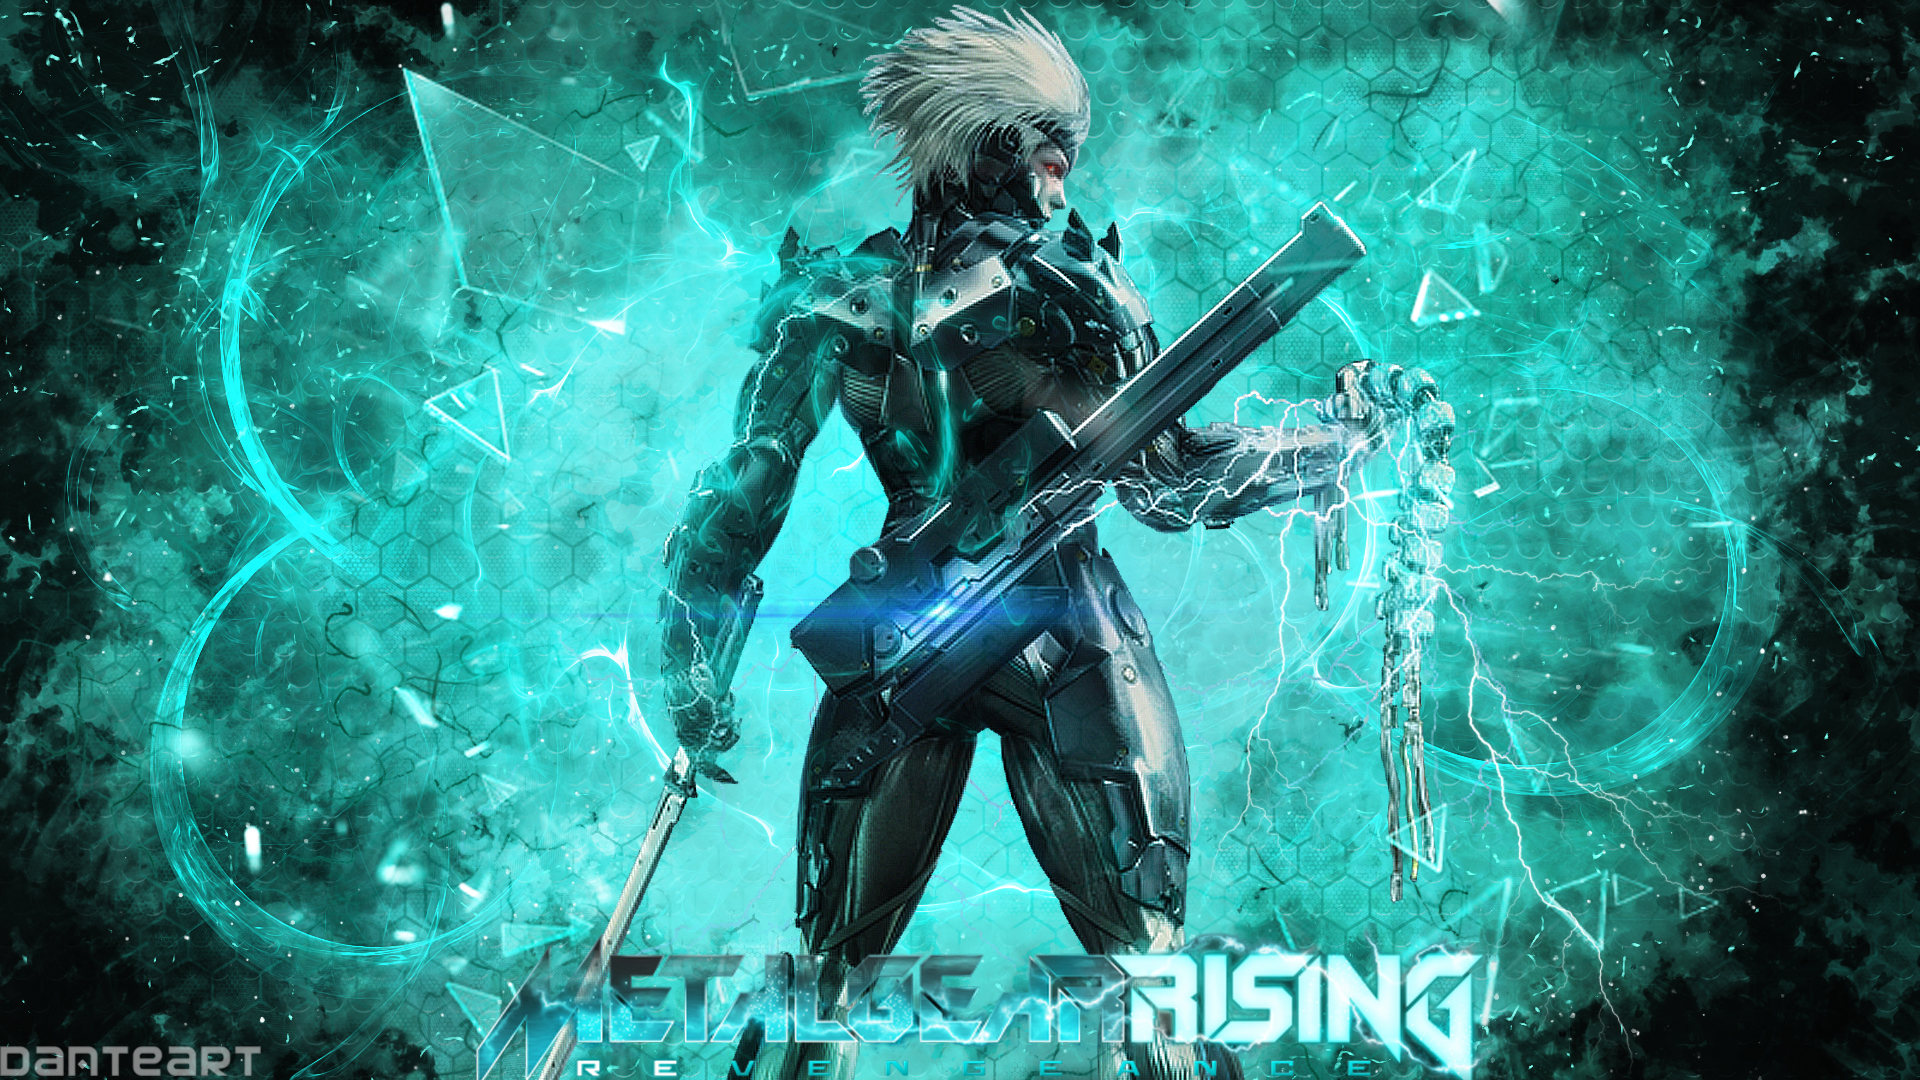 Metal gear rising raiden wallpaper by danteartwallpapers on deviantart metal gear rising raiden wallpaper by danteartwallpapers metal gear rising raiden wallpaper by danteartwallpapers voltagebd Image collections